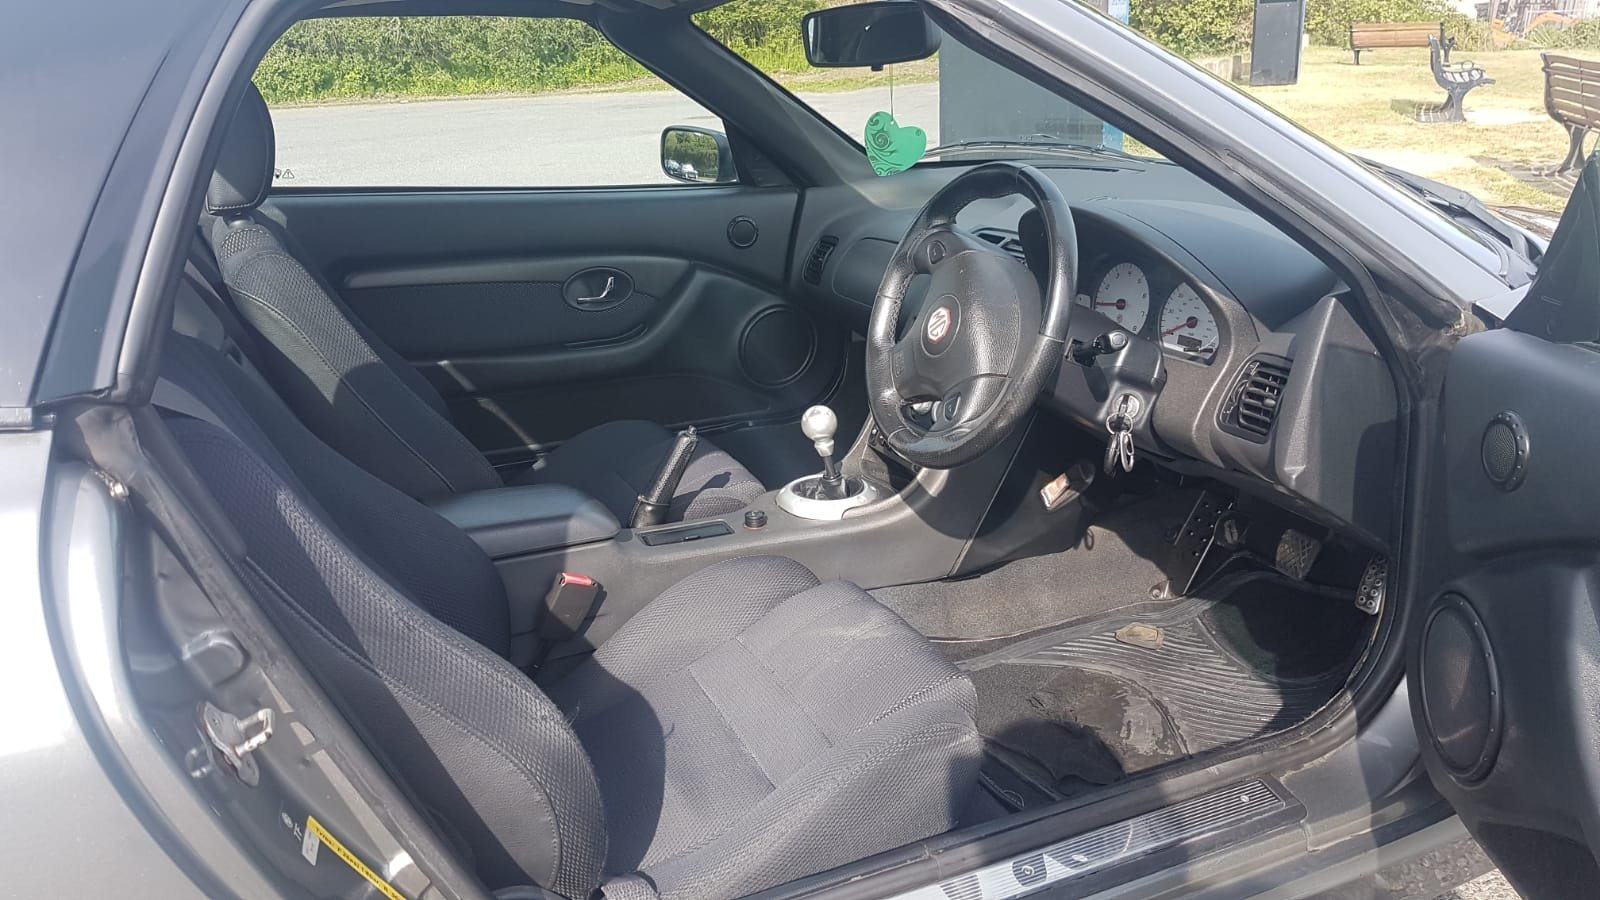 2005 MGTF  new clutch, hard top For Sale (picture 5 of 6)